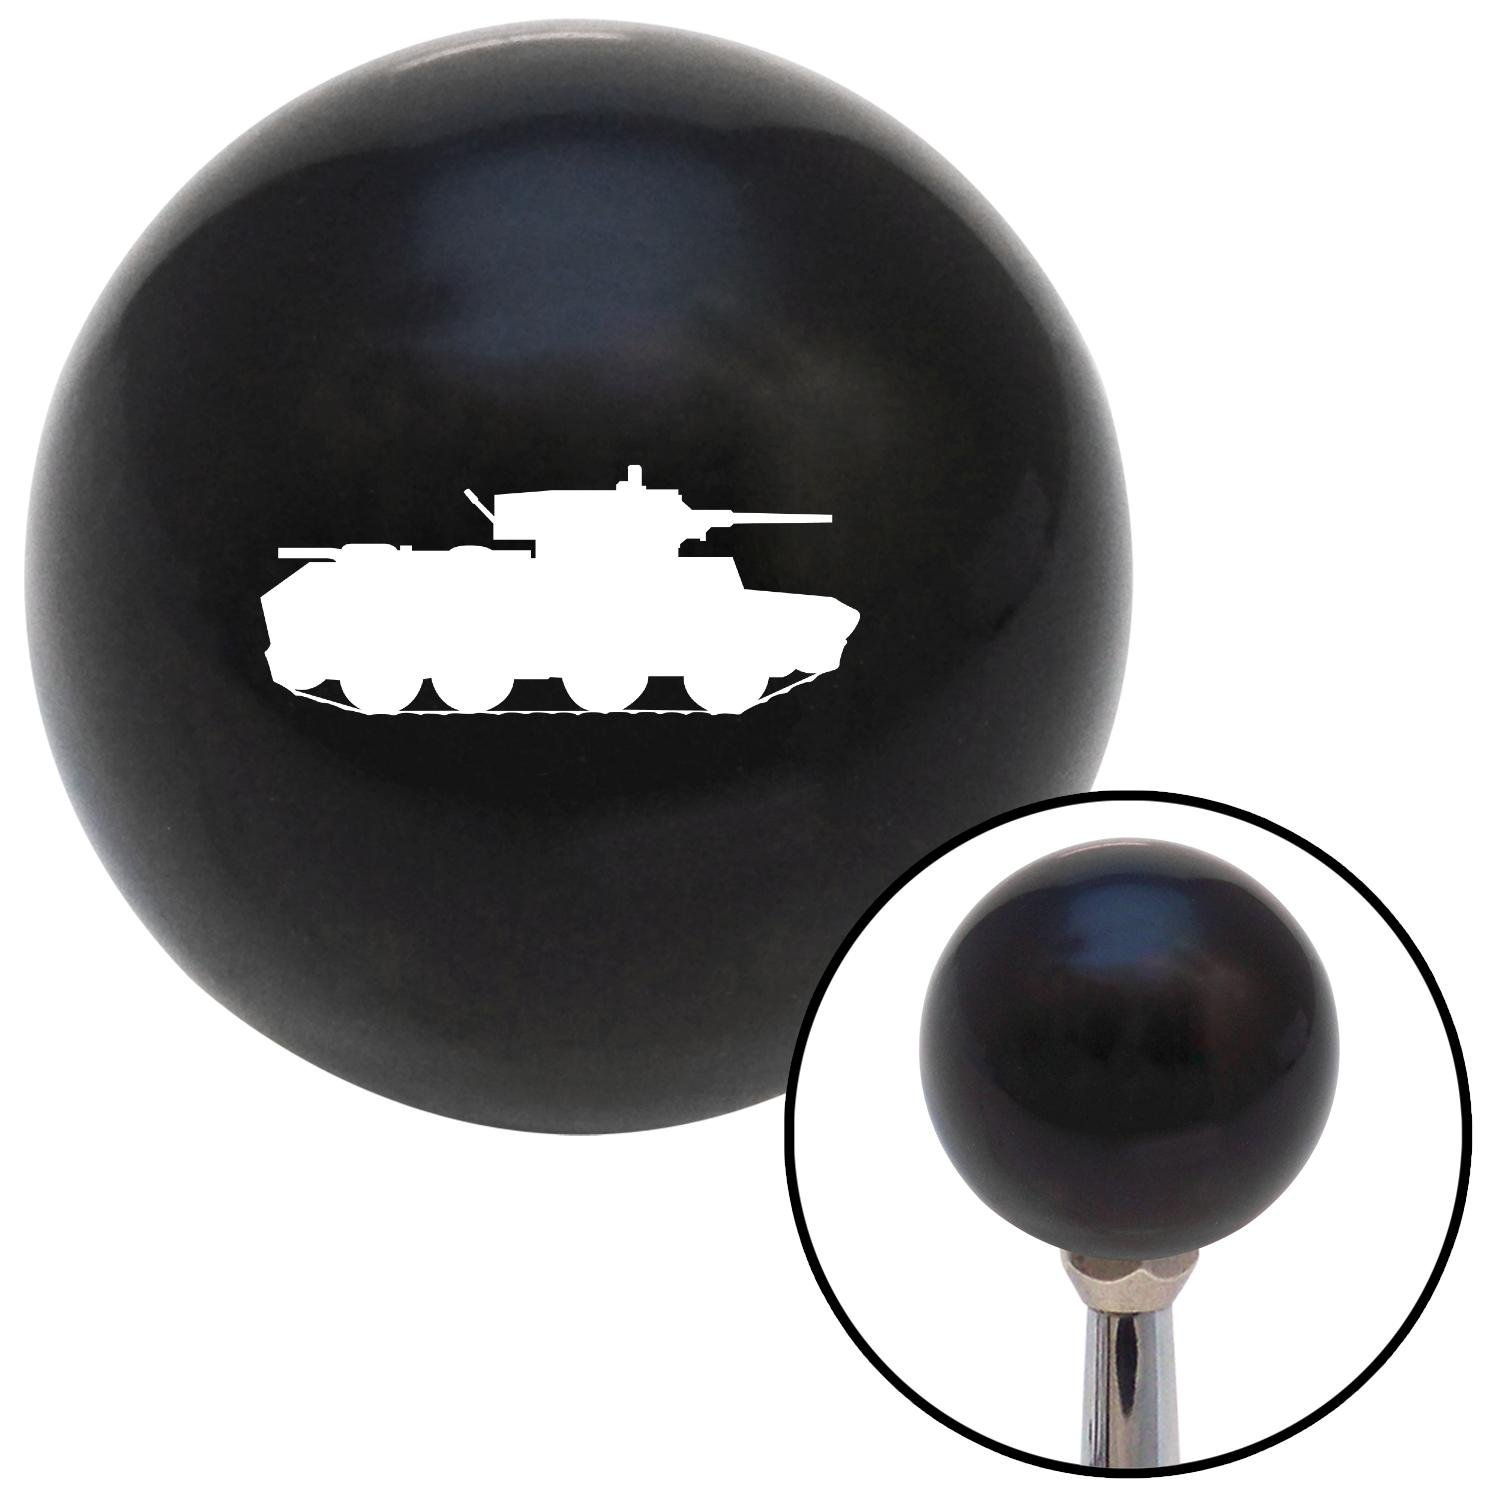 American Shifter 106997 Black Shift Knob with M16 x 1.5 Insert White Tank